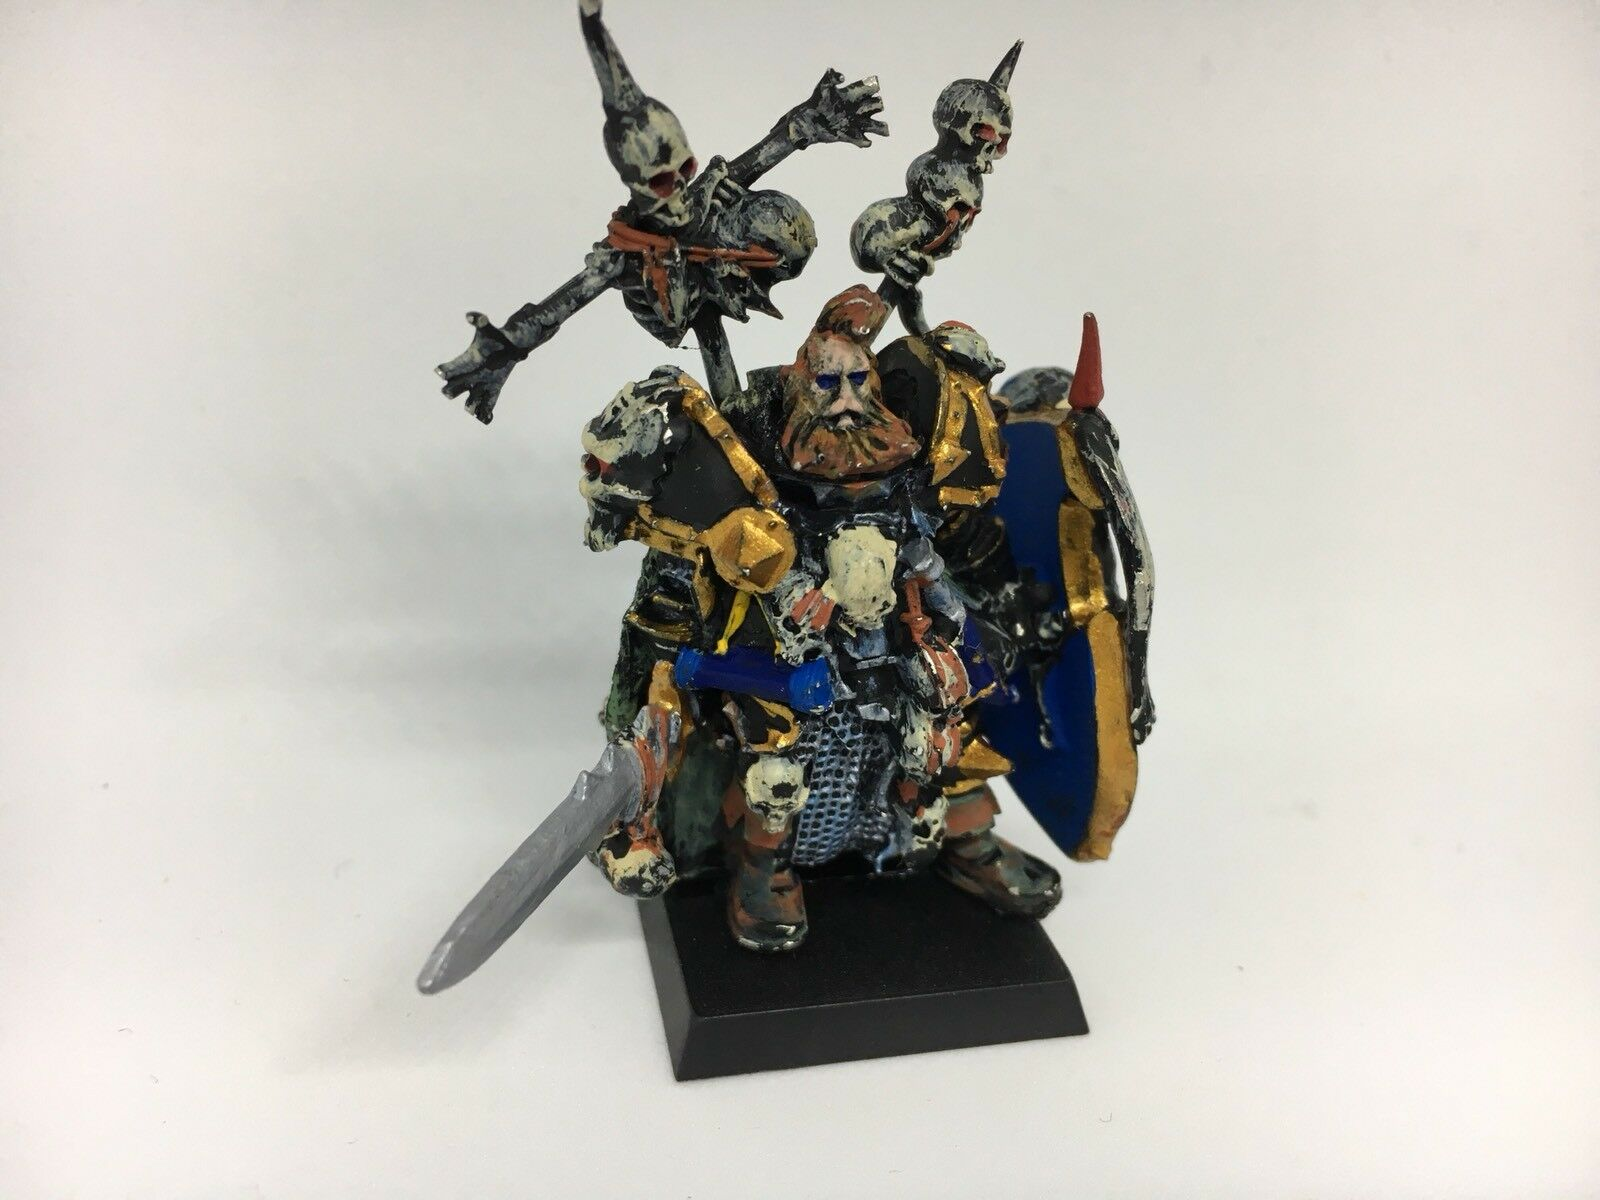 Warhammer Fantasy AoS Chaos Exalted Hero Of Chaos Painted Assembled